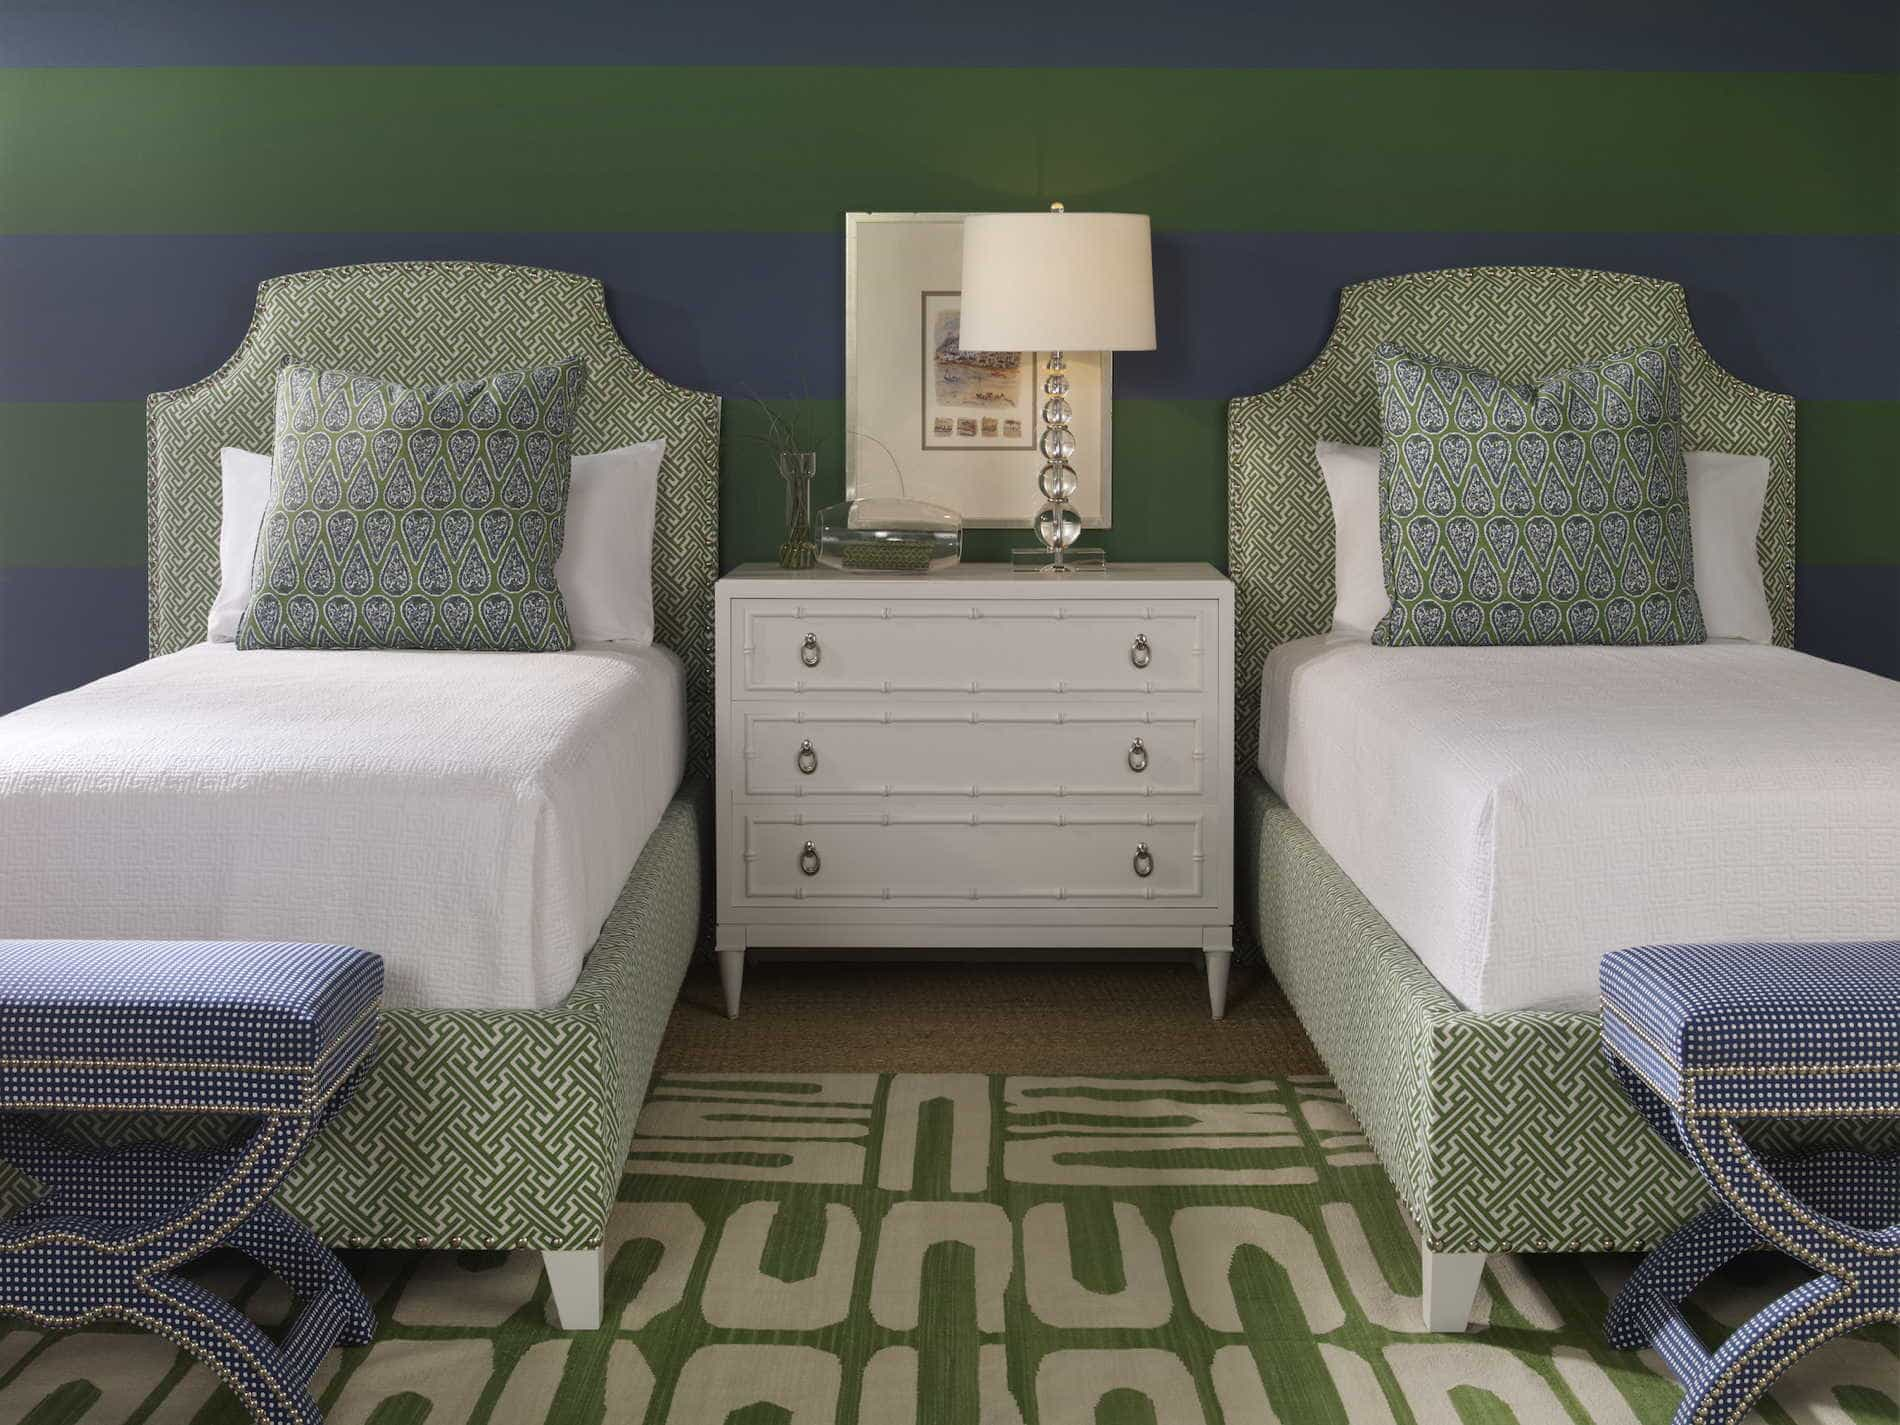 Tips to make a room look bigger from Krissy Millner